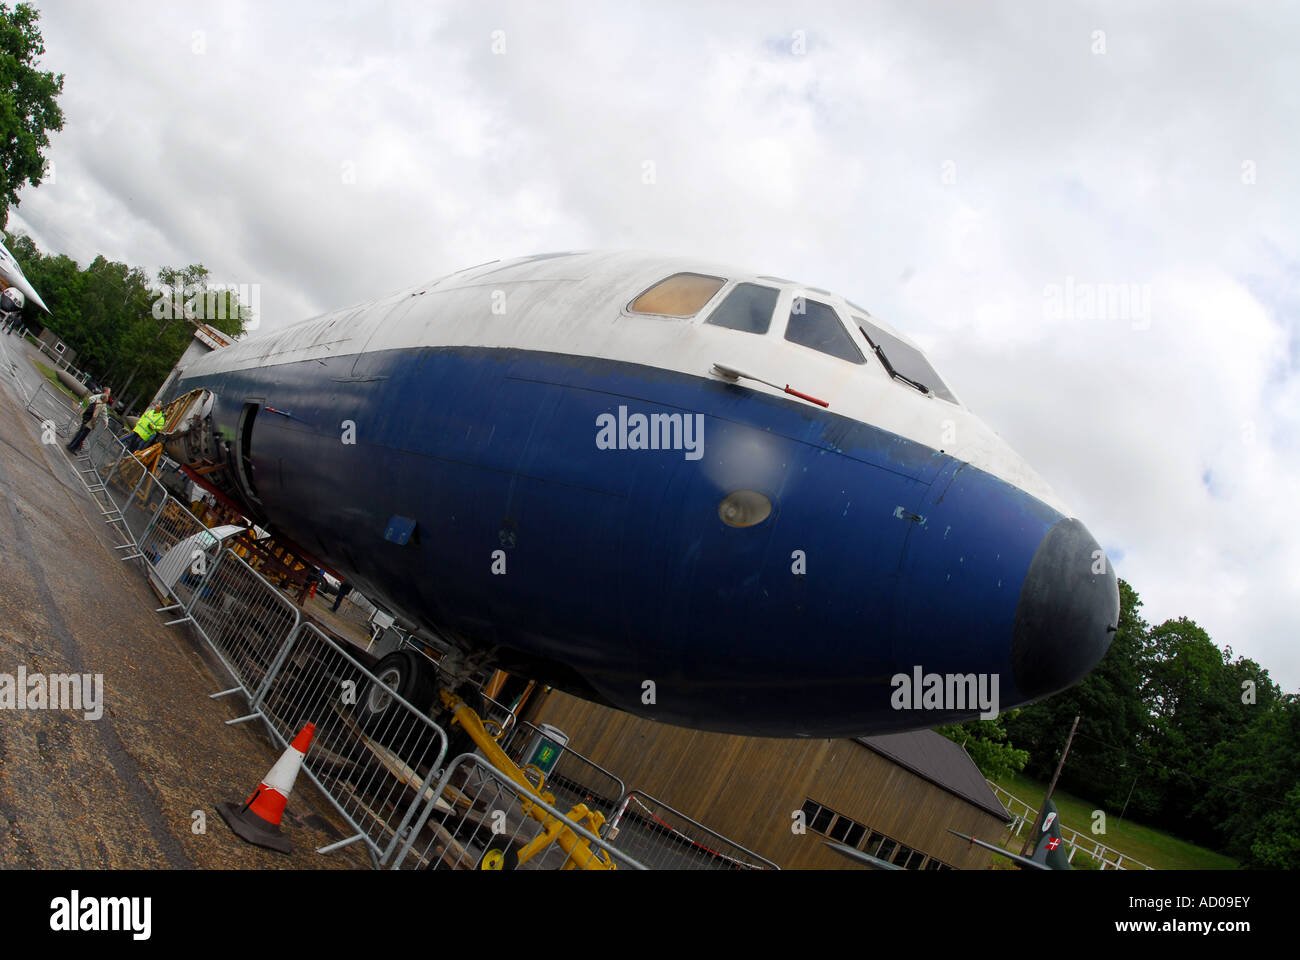 Vickers VC10 fuselage at Brooklands museum - No wings - Stock Image